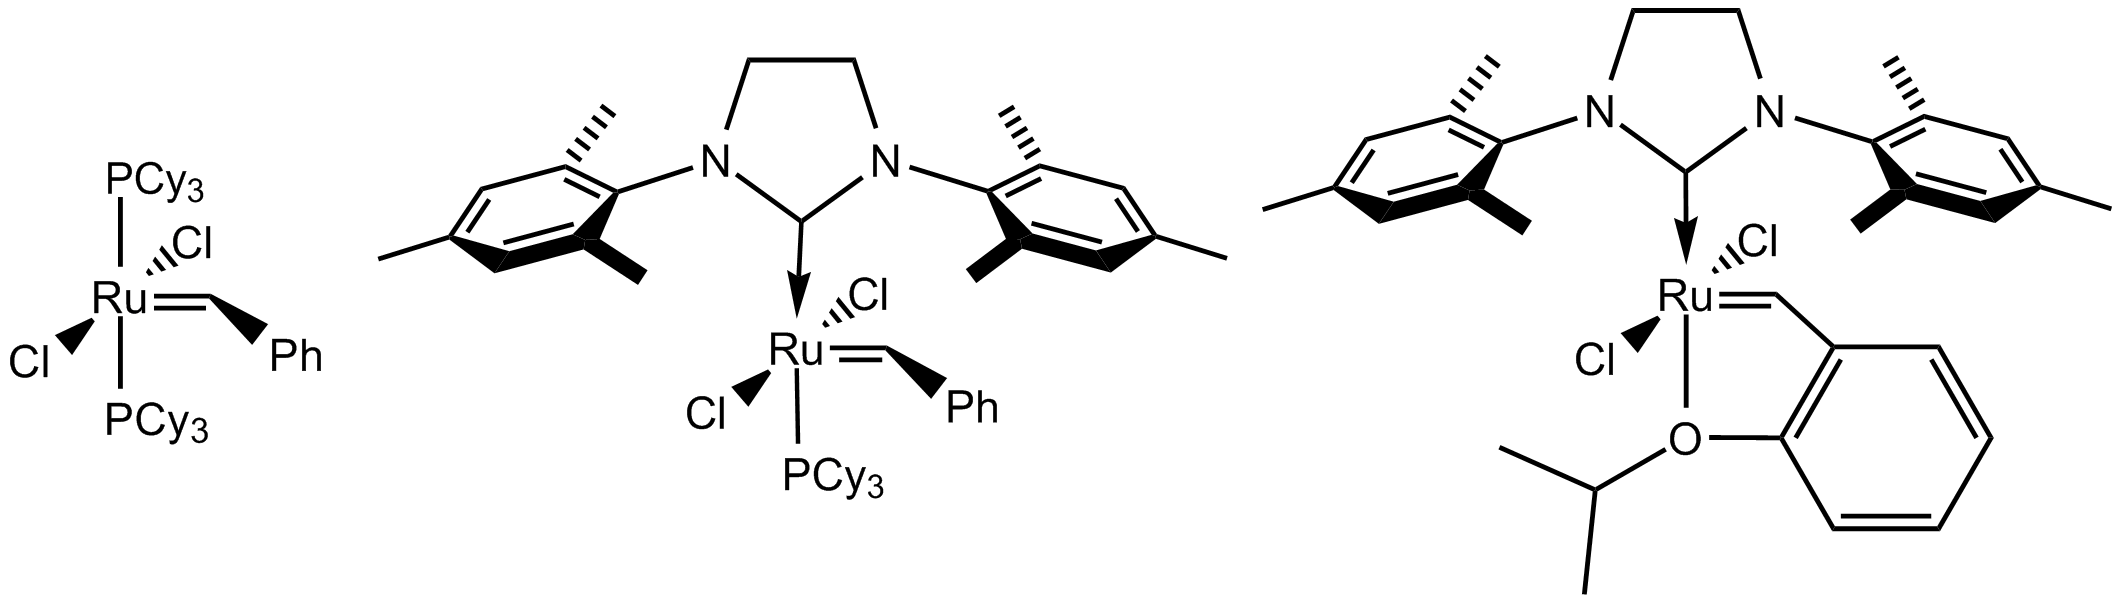 new ruthenium catalysts for alkene metathesis